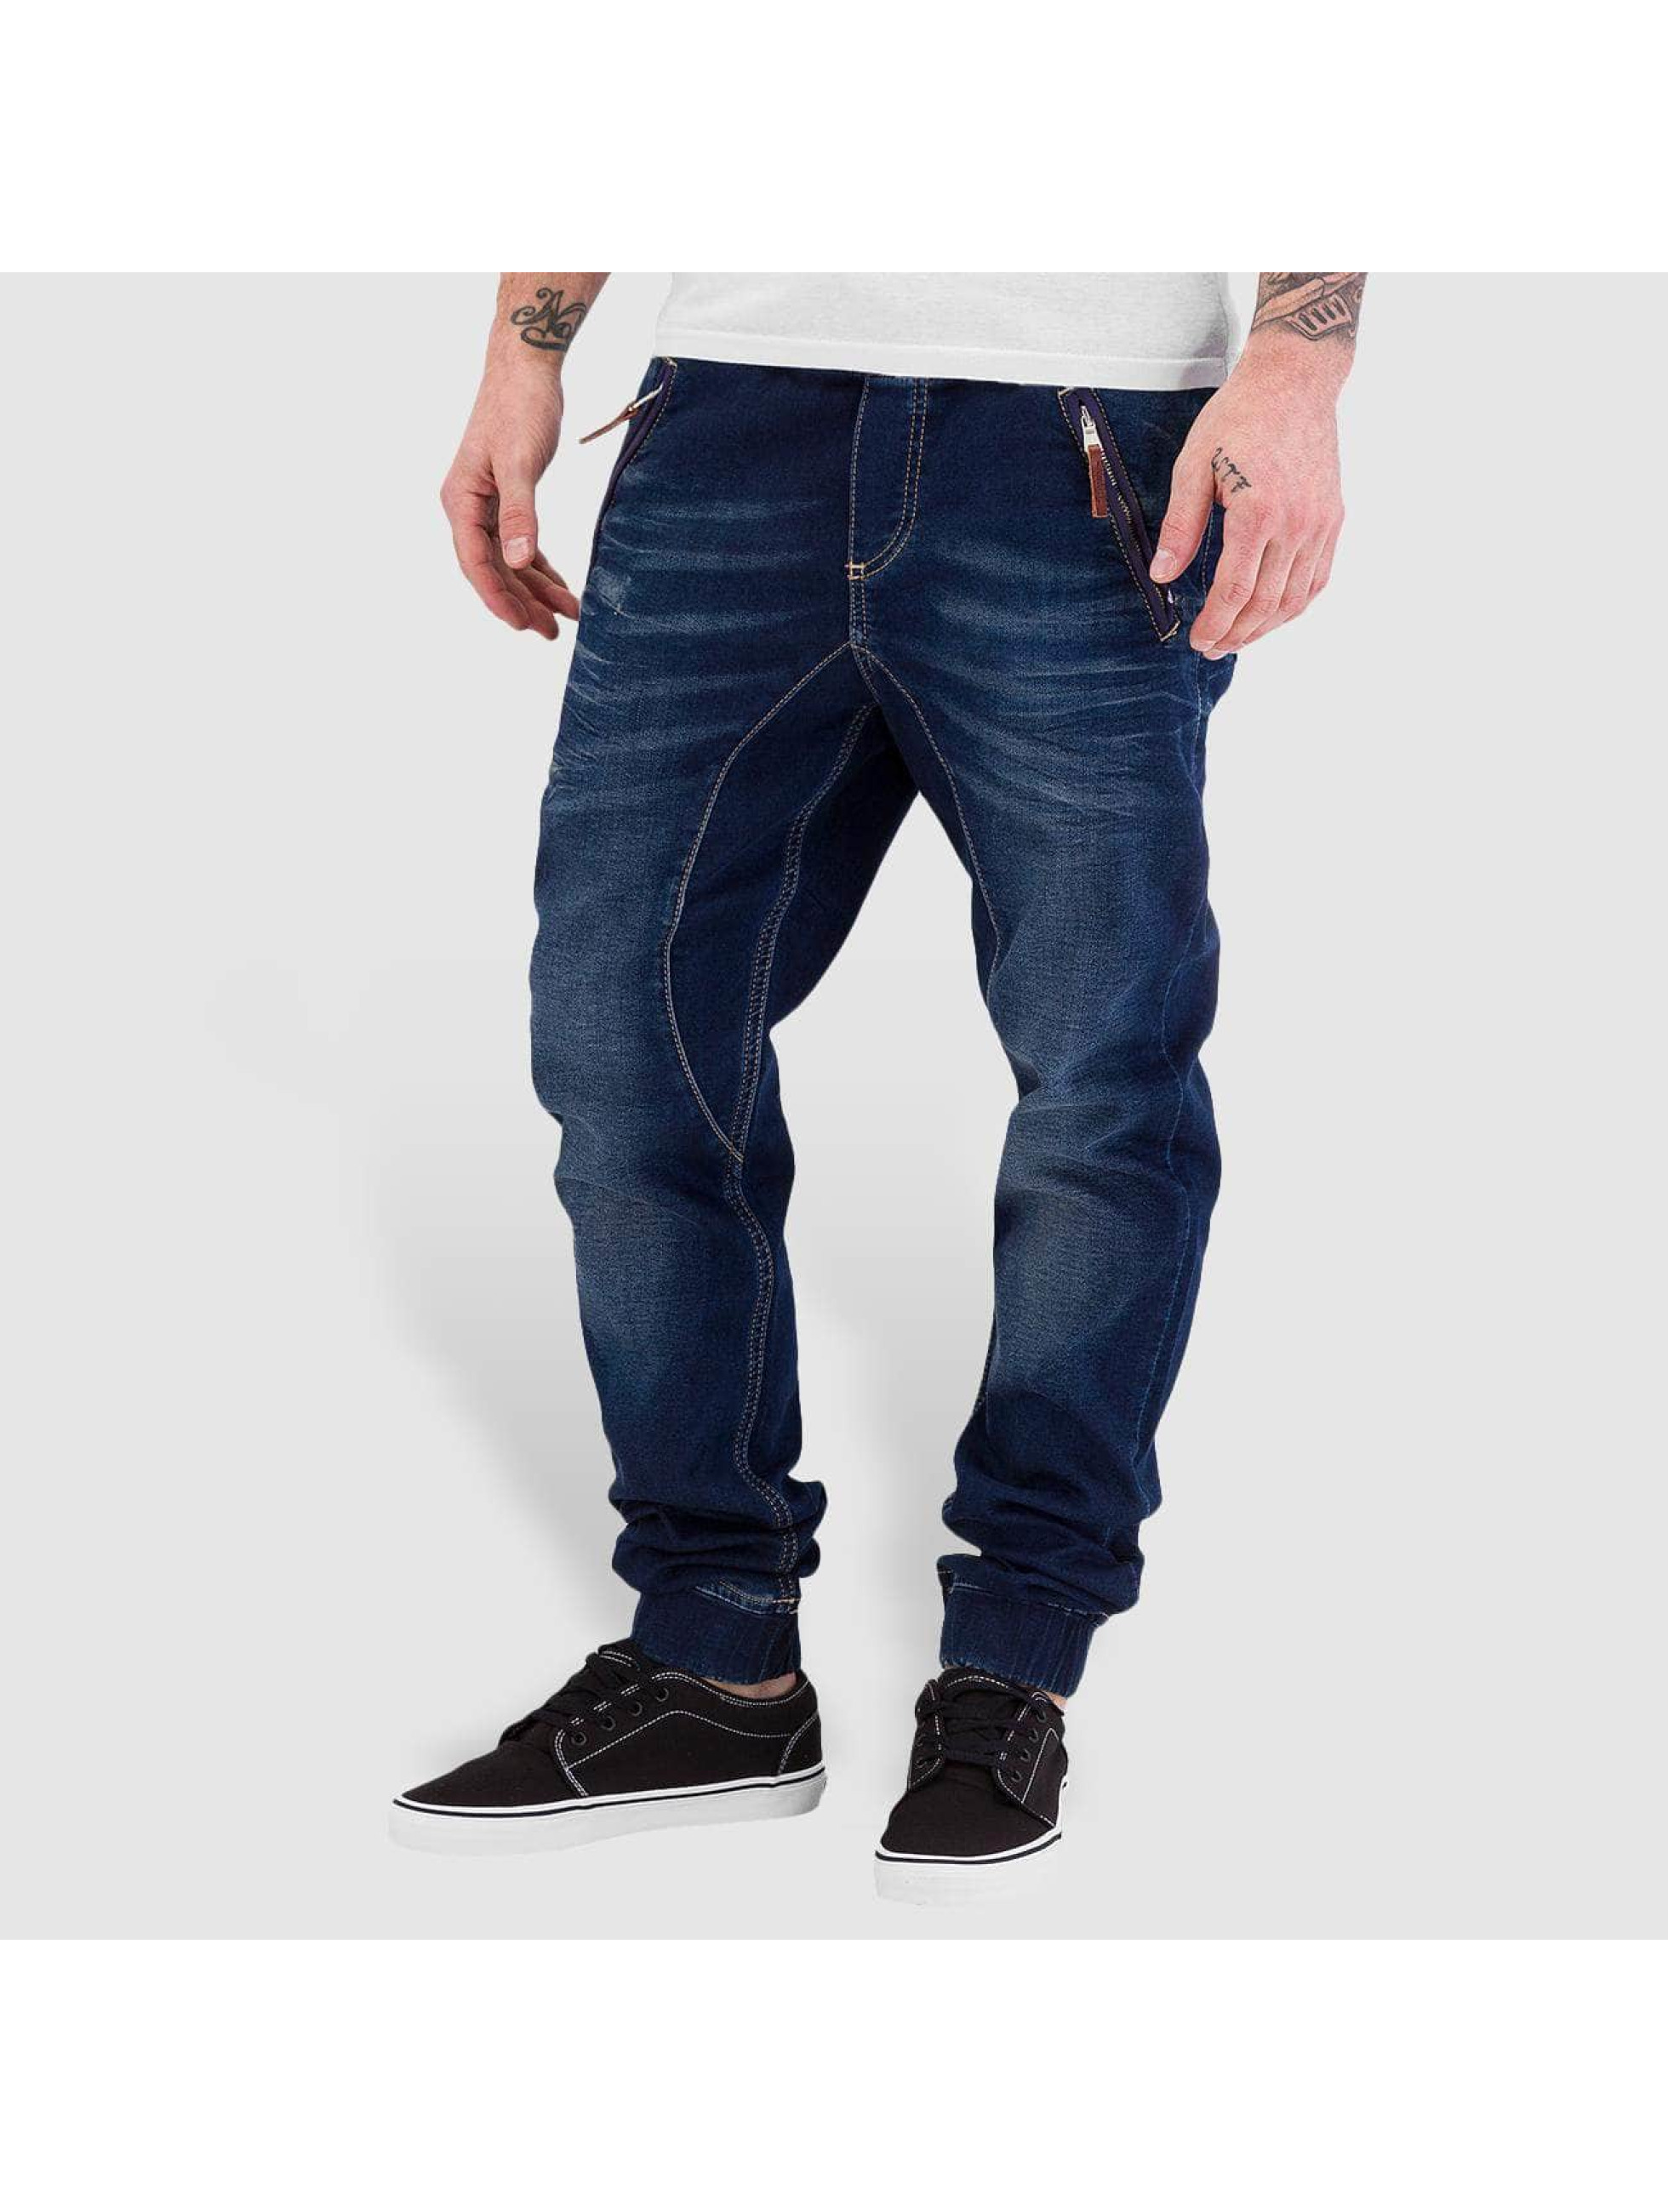 Red Bridge Männer Jogginghose Jeans Look in blau